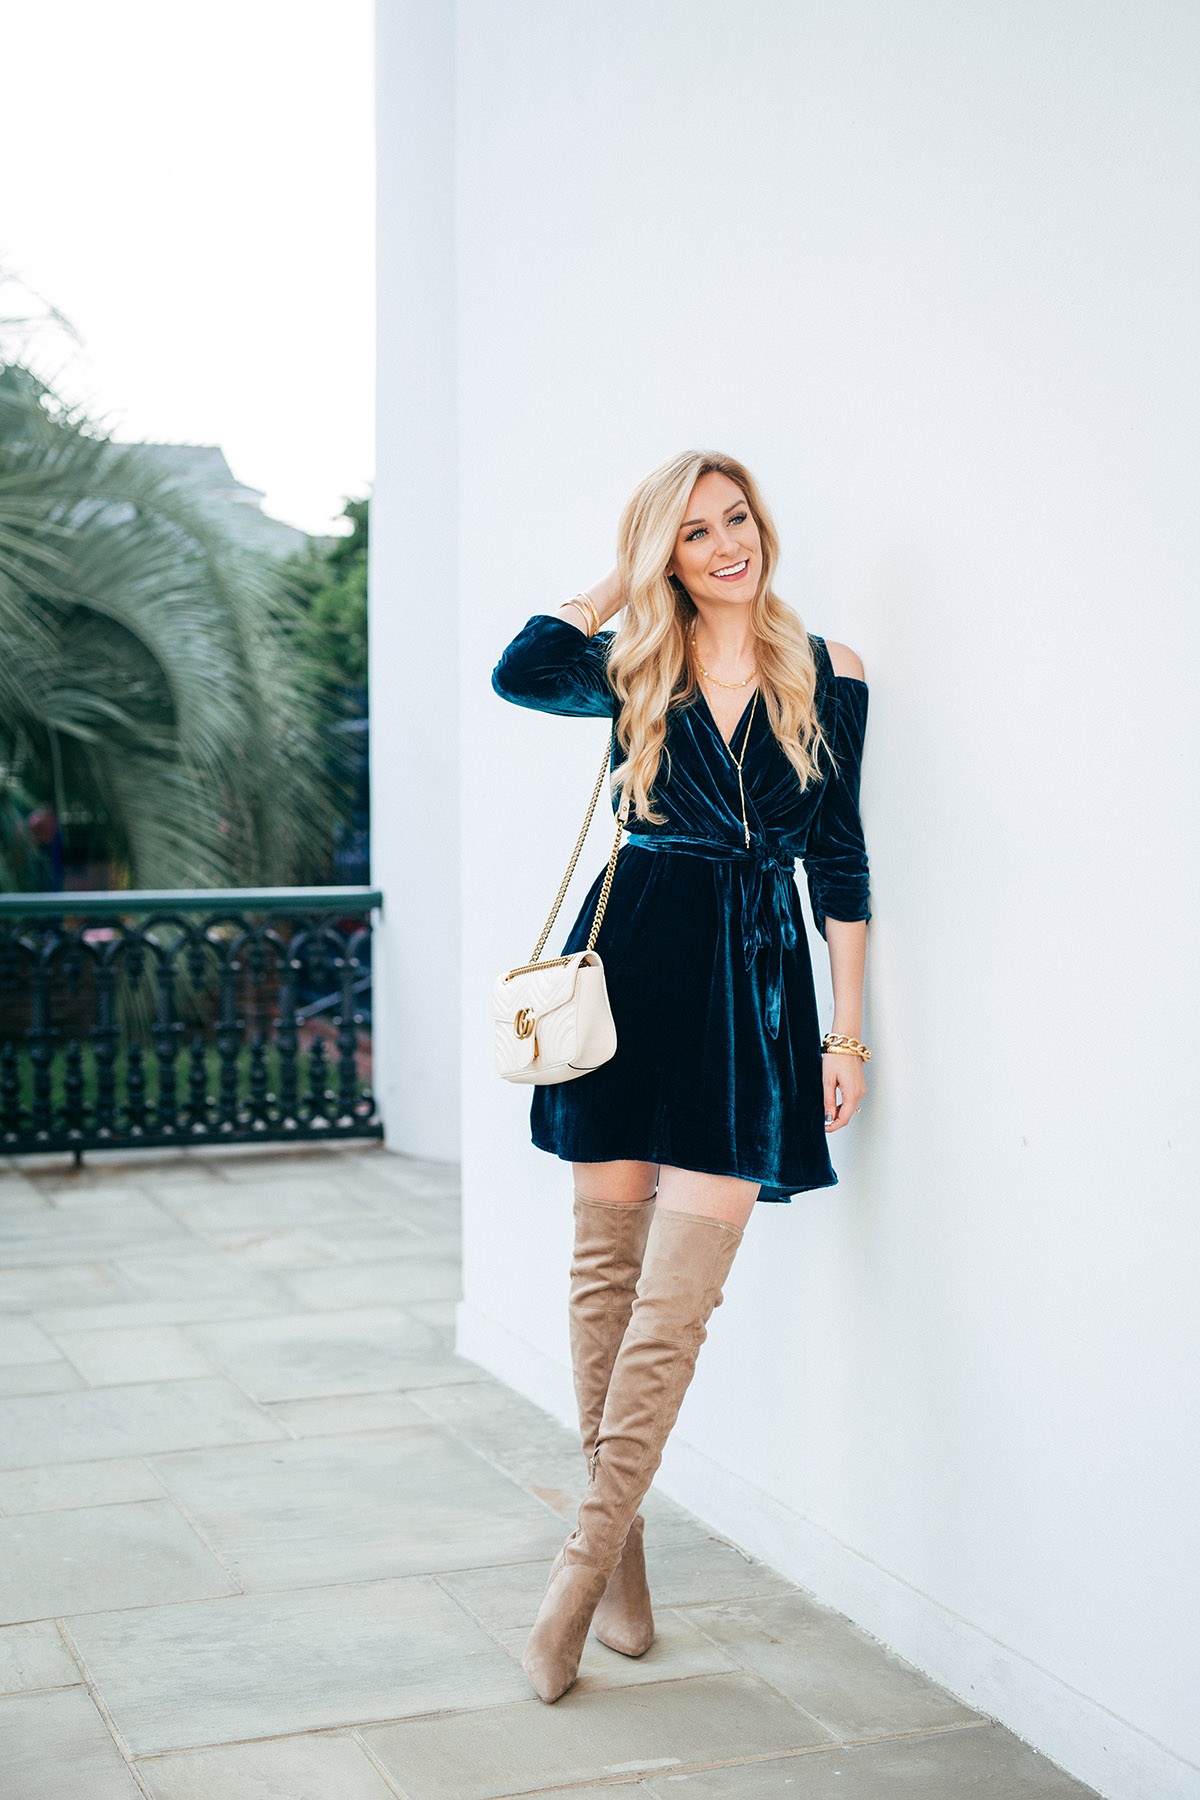 Statement Jewelry For Your Holiday Looks | Lee Michaels Fine Jewelry | Velvet Mini Dress + OTK Boots